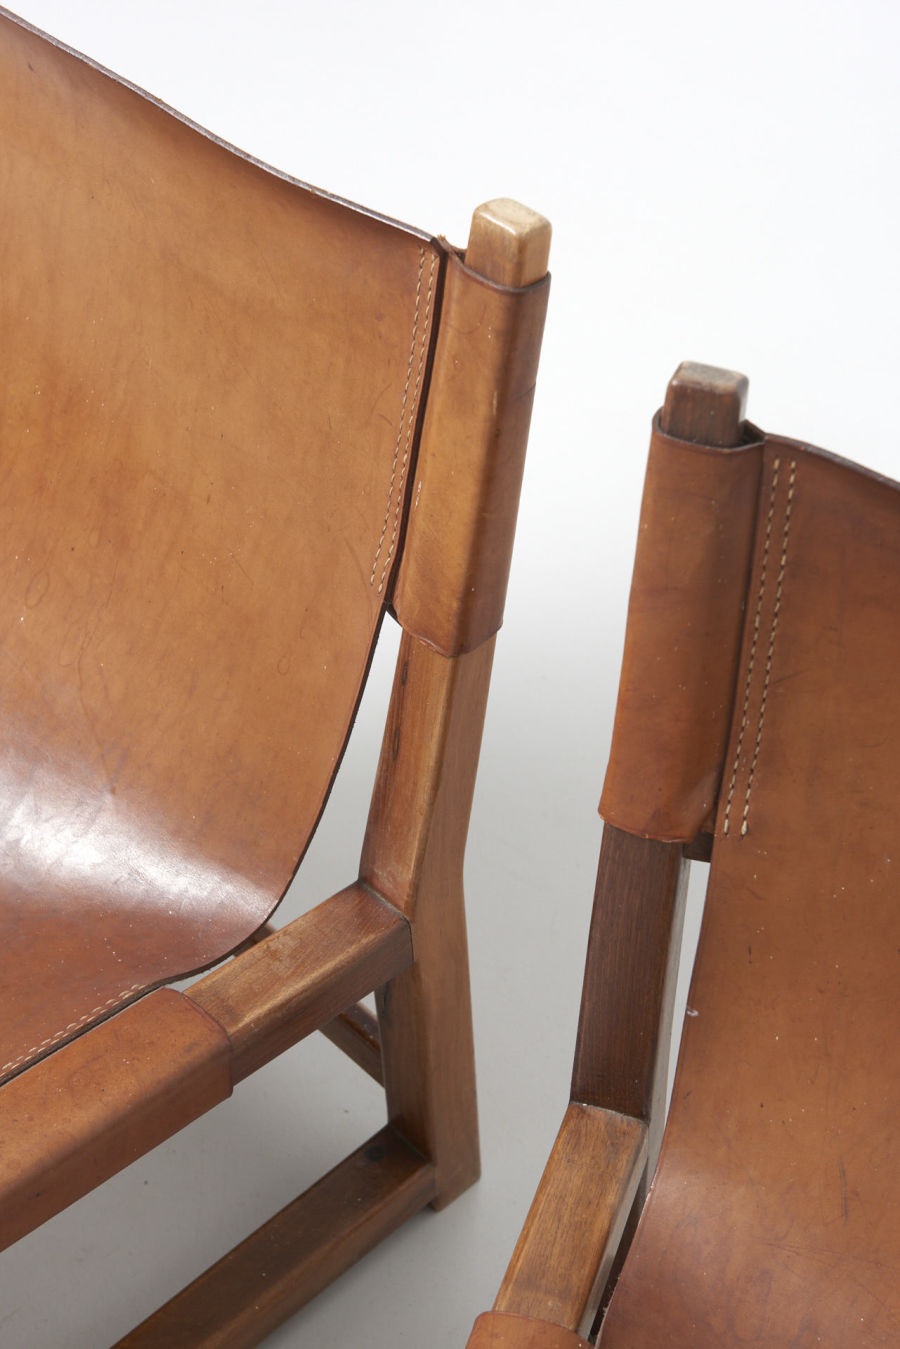 modestfurniture-vintage-2096-riaza-chair-saddle-leather-paco-munoz07